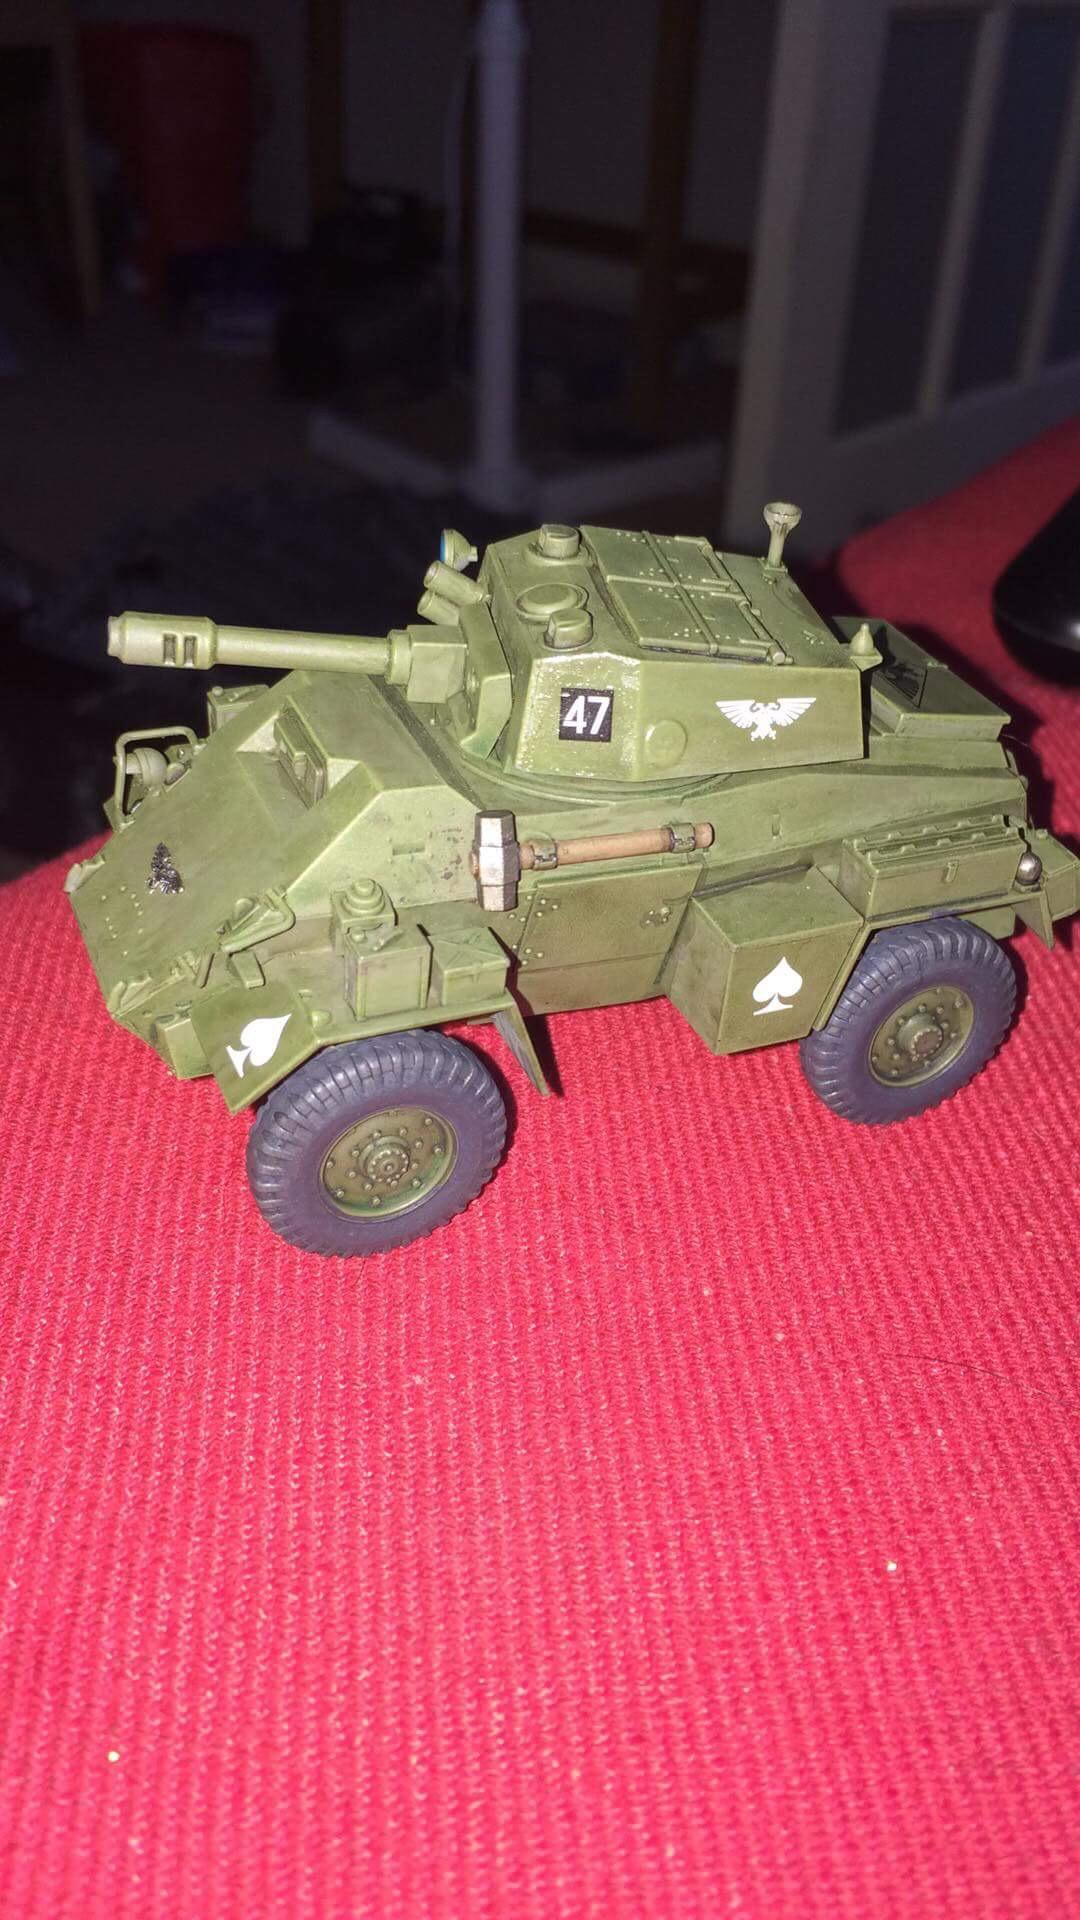 Armored Car, Astra Militarum, British, Cold War, Conversion, Counts As, Humber, Imperial, Imperial Guard, Scouts, Wheeled Vehicle, World War 2